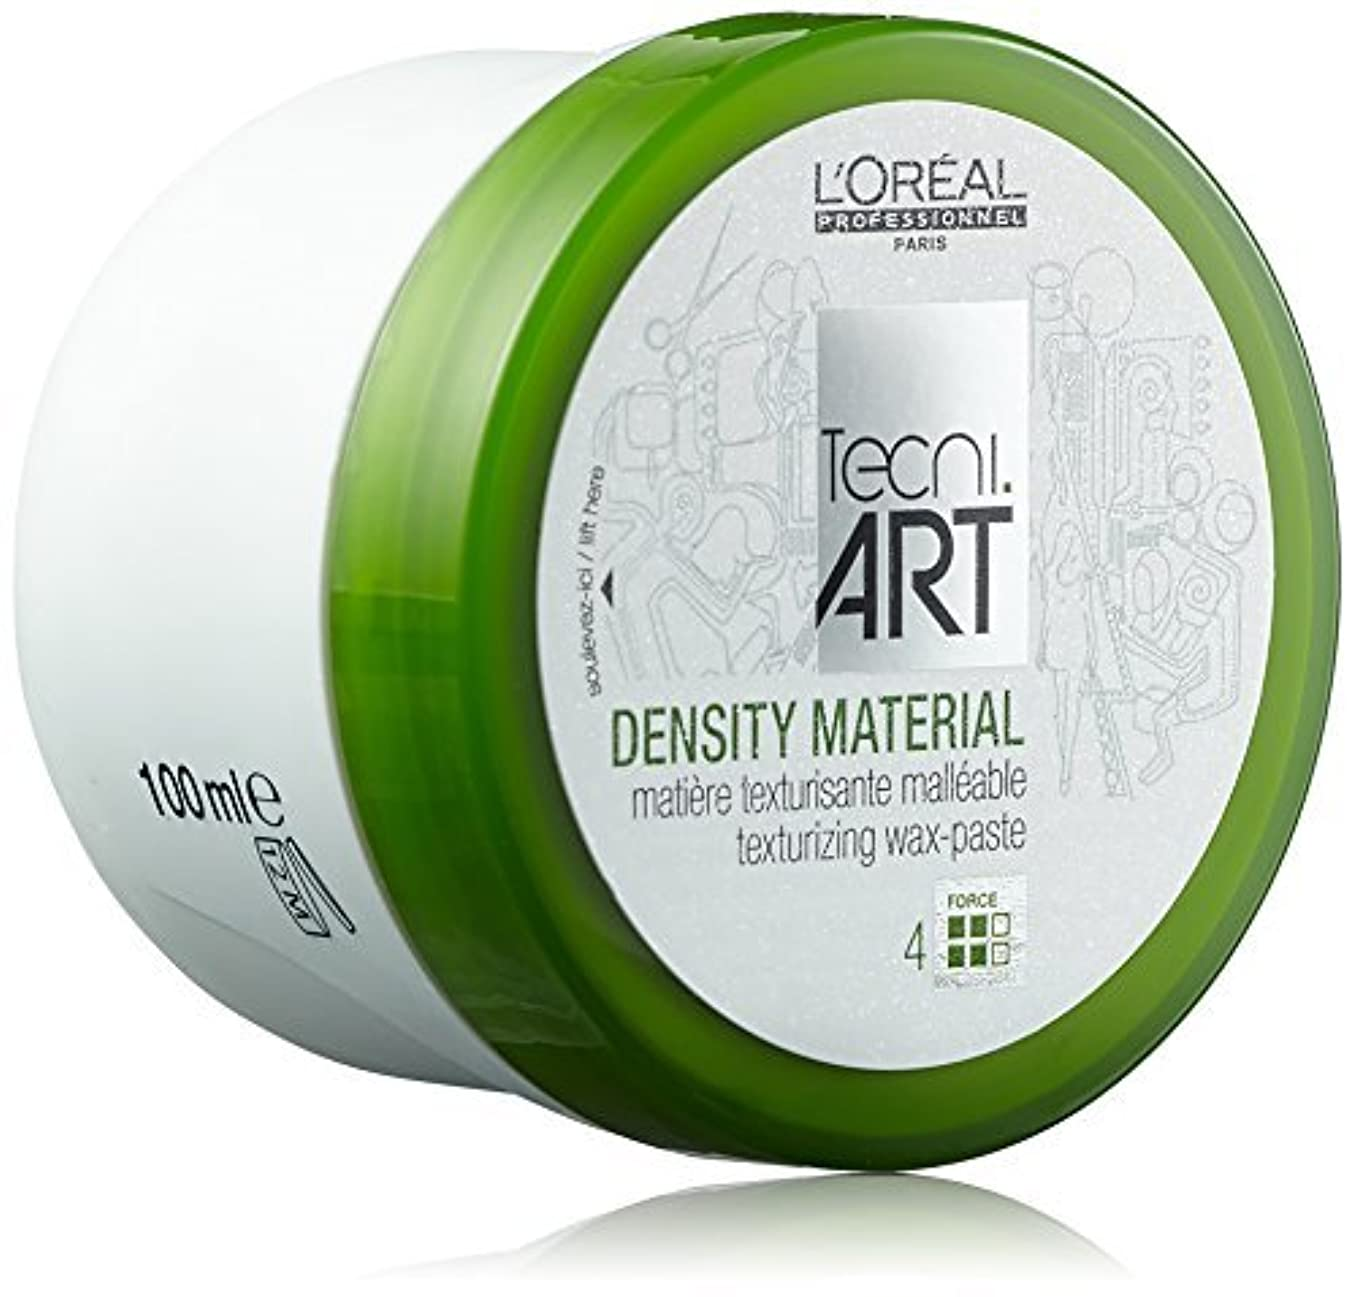 タックソファー要旨L'Oreal Professionnel Tecni.Art Play Ball Density Material 100ml/3.4oz by L'oreal [並行輸入品]